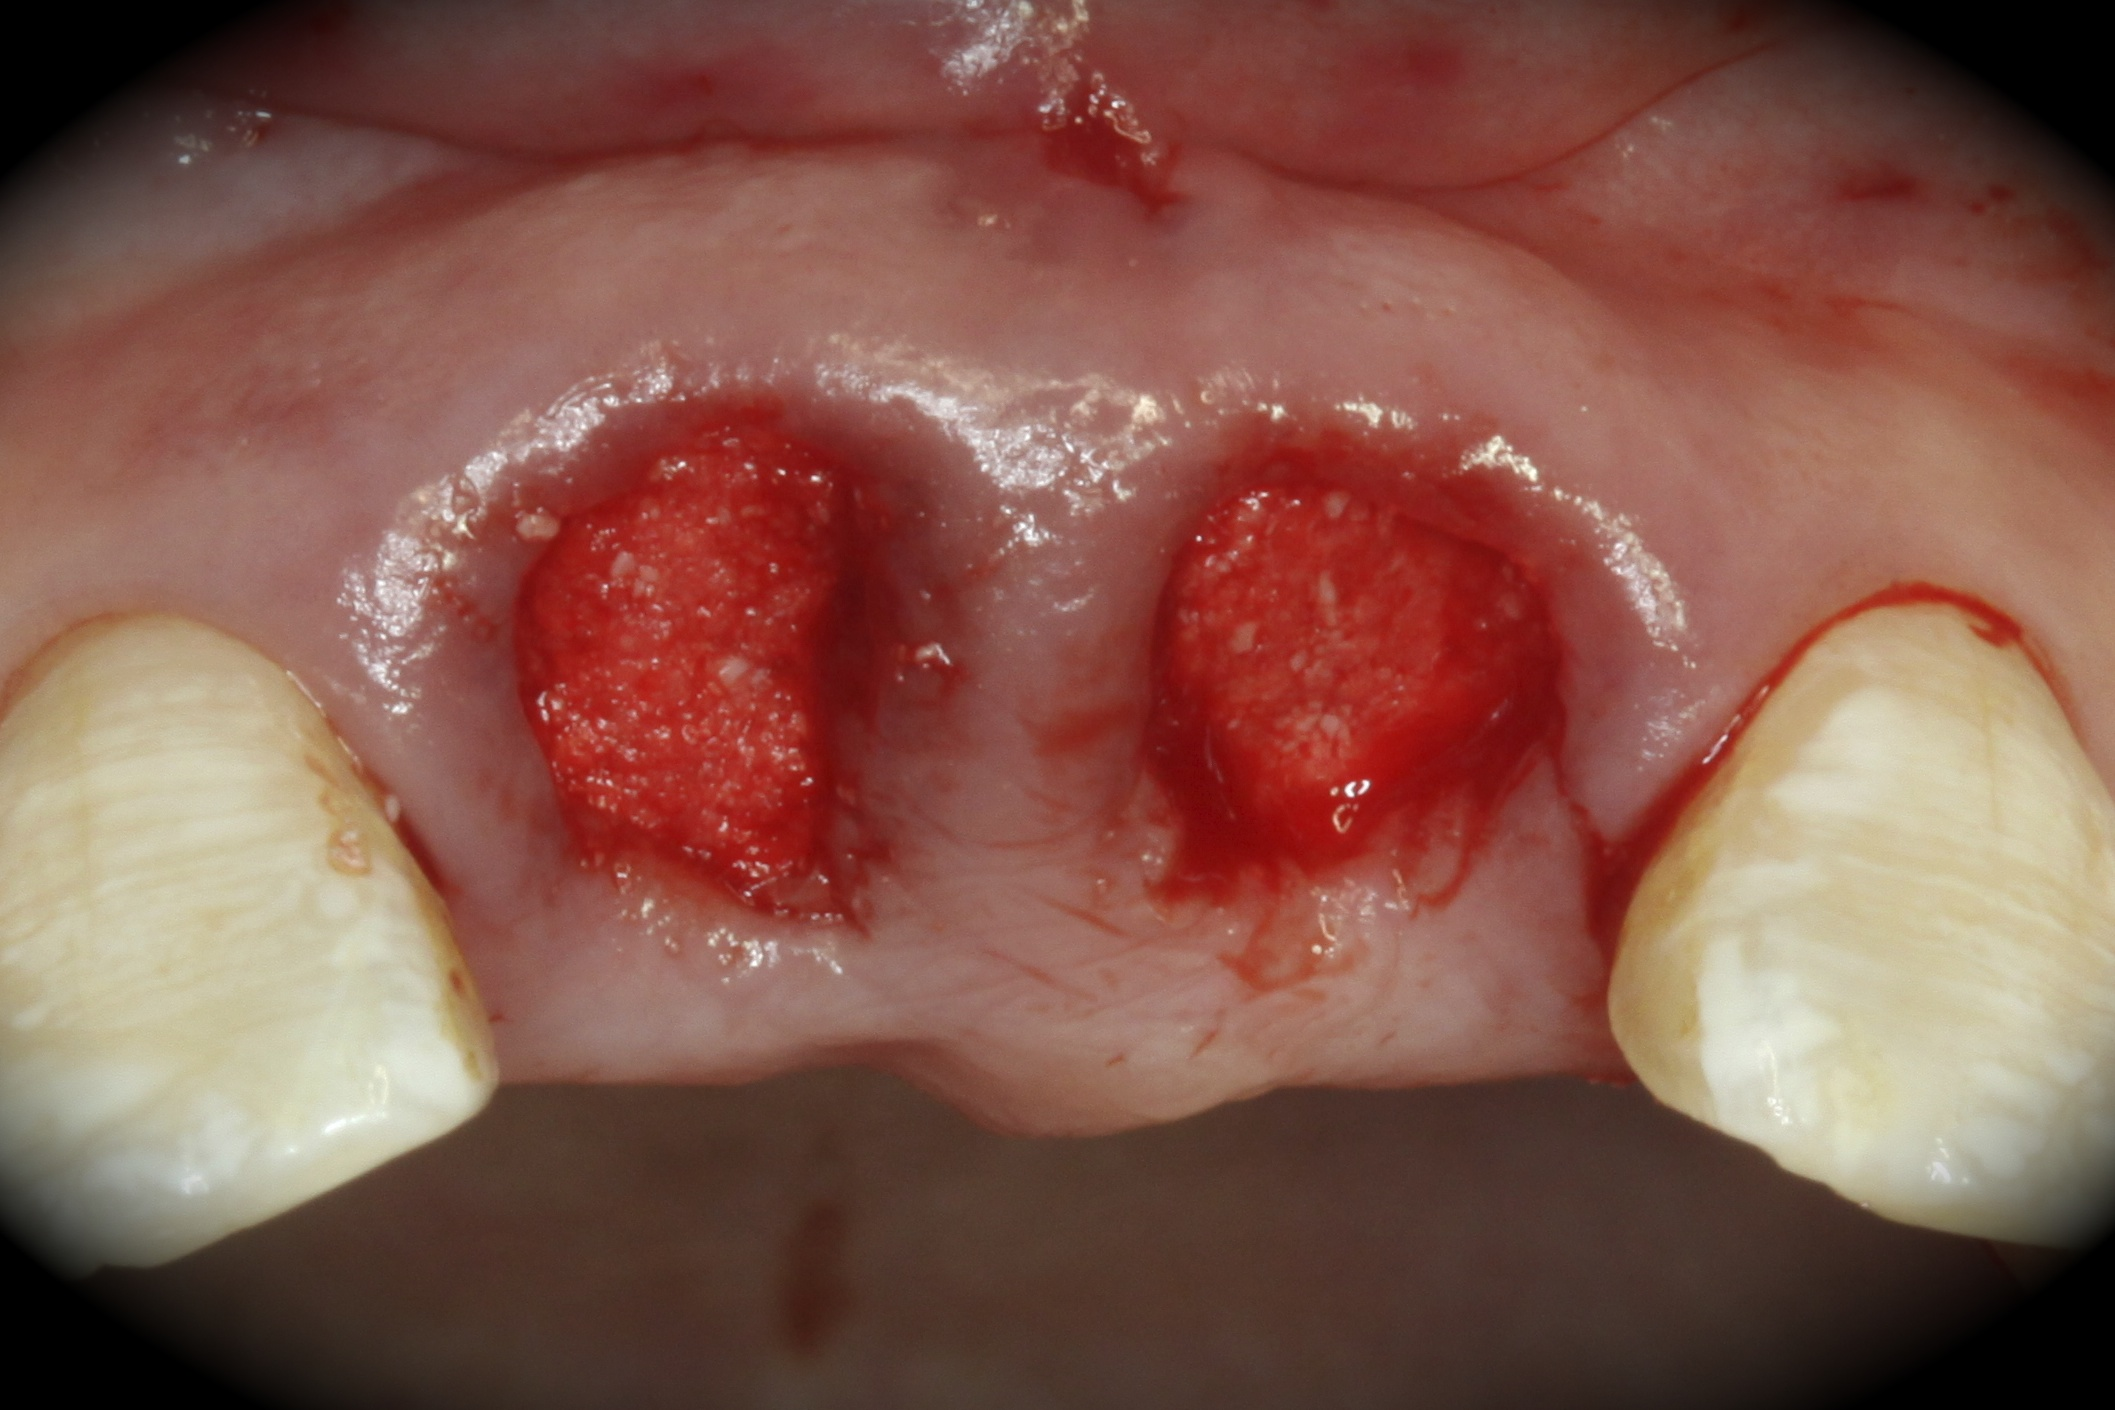 Extraction and replacement of maxillary central incisors | FOR.org